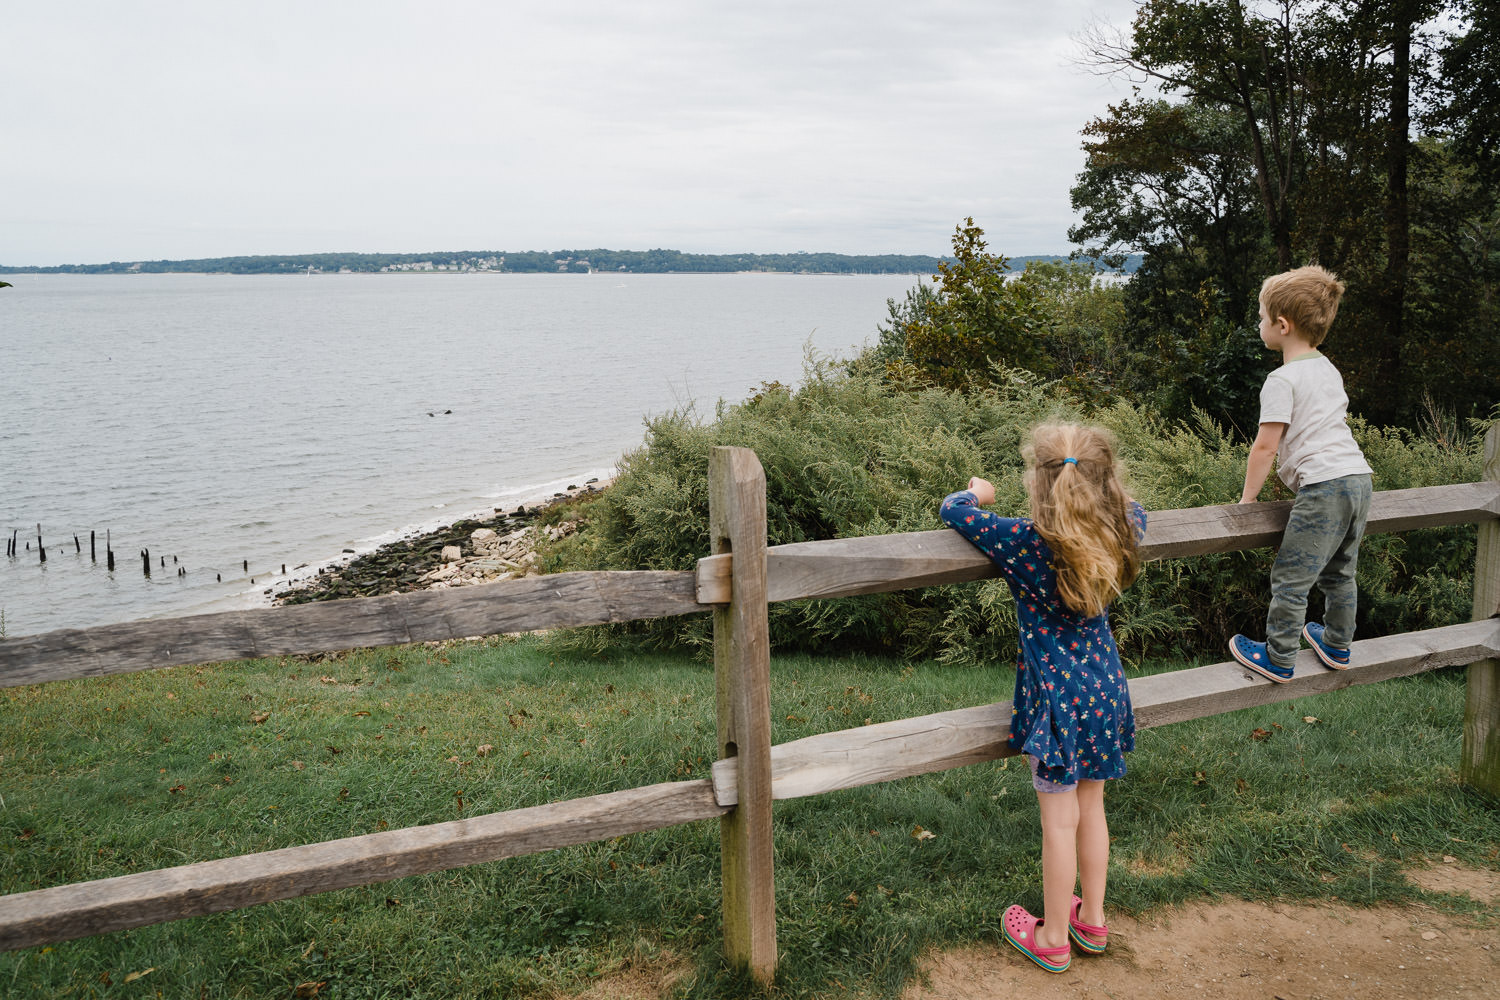 Two children look out at the view.